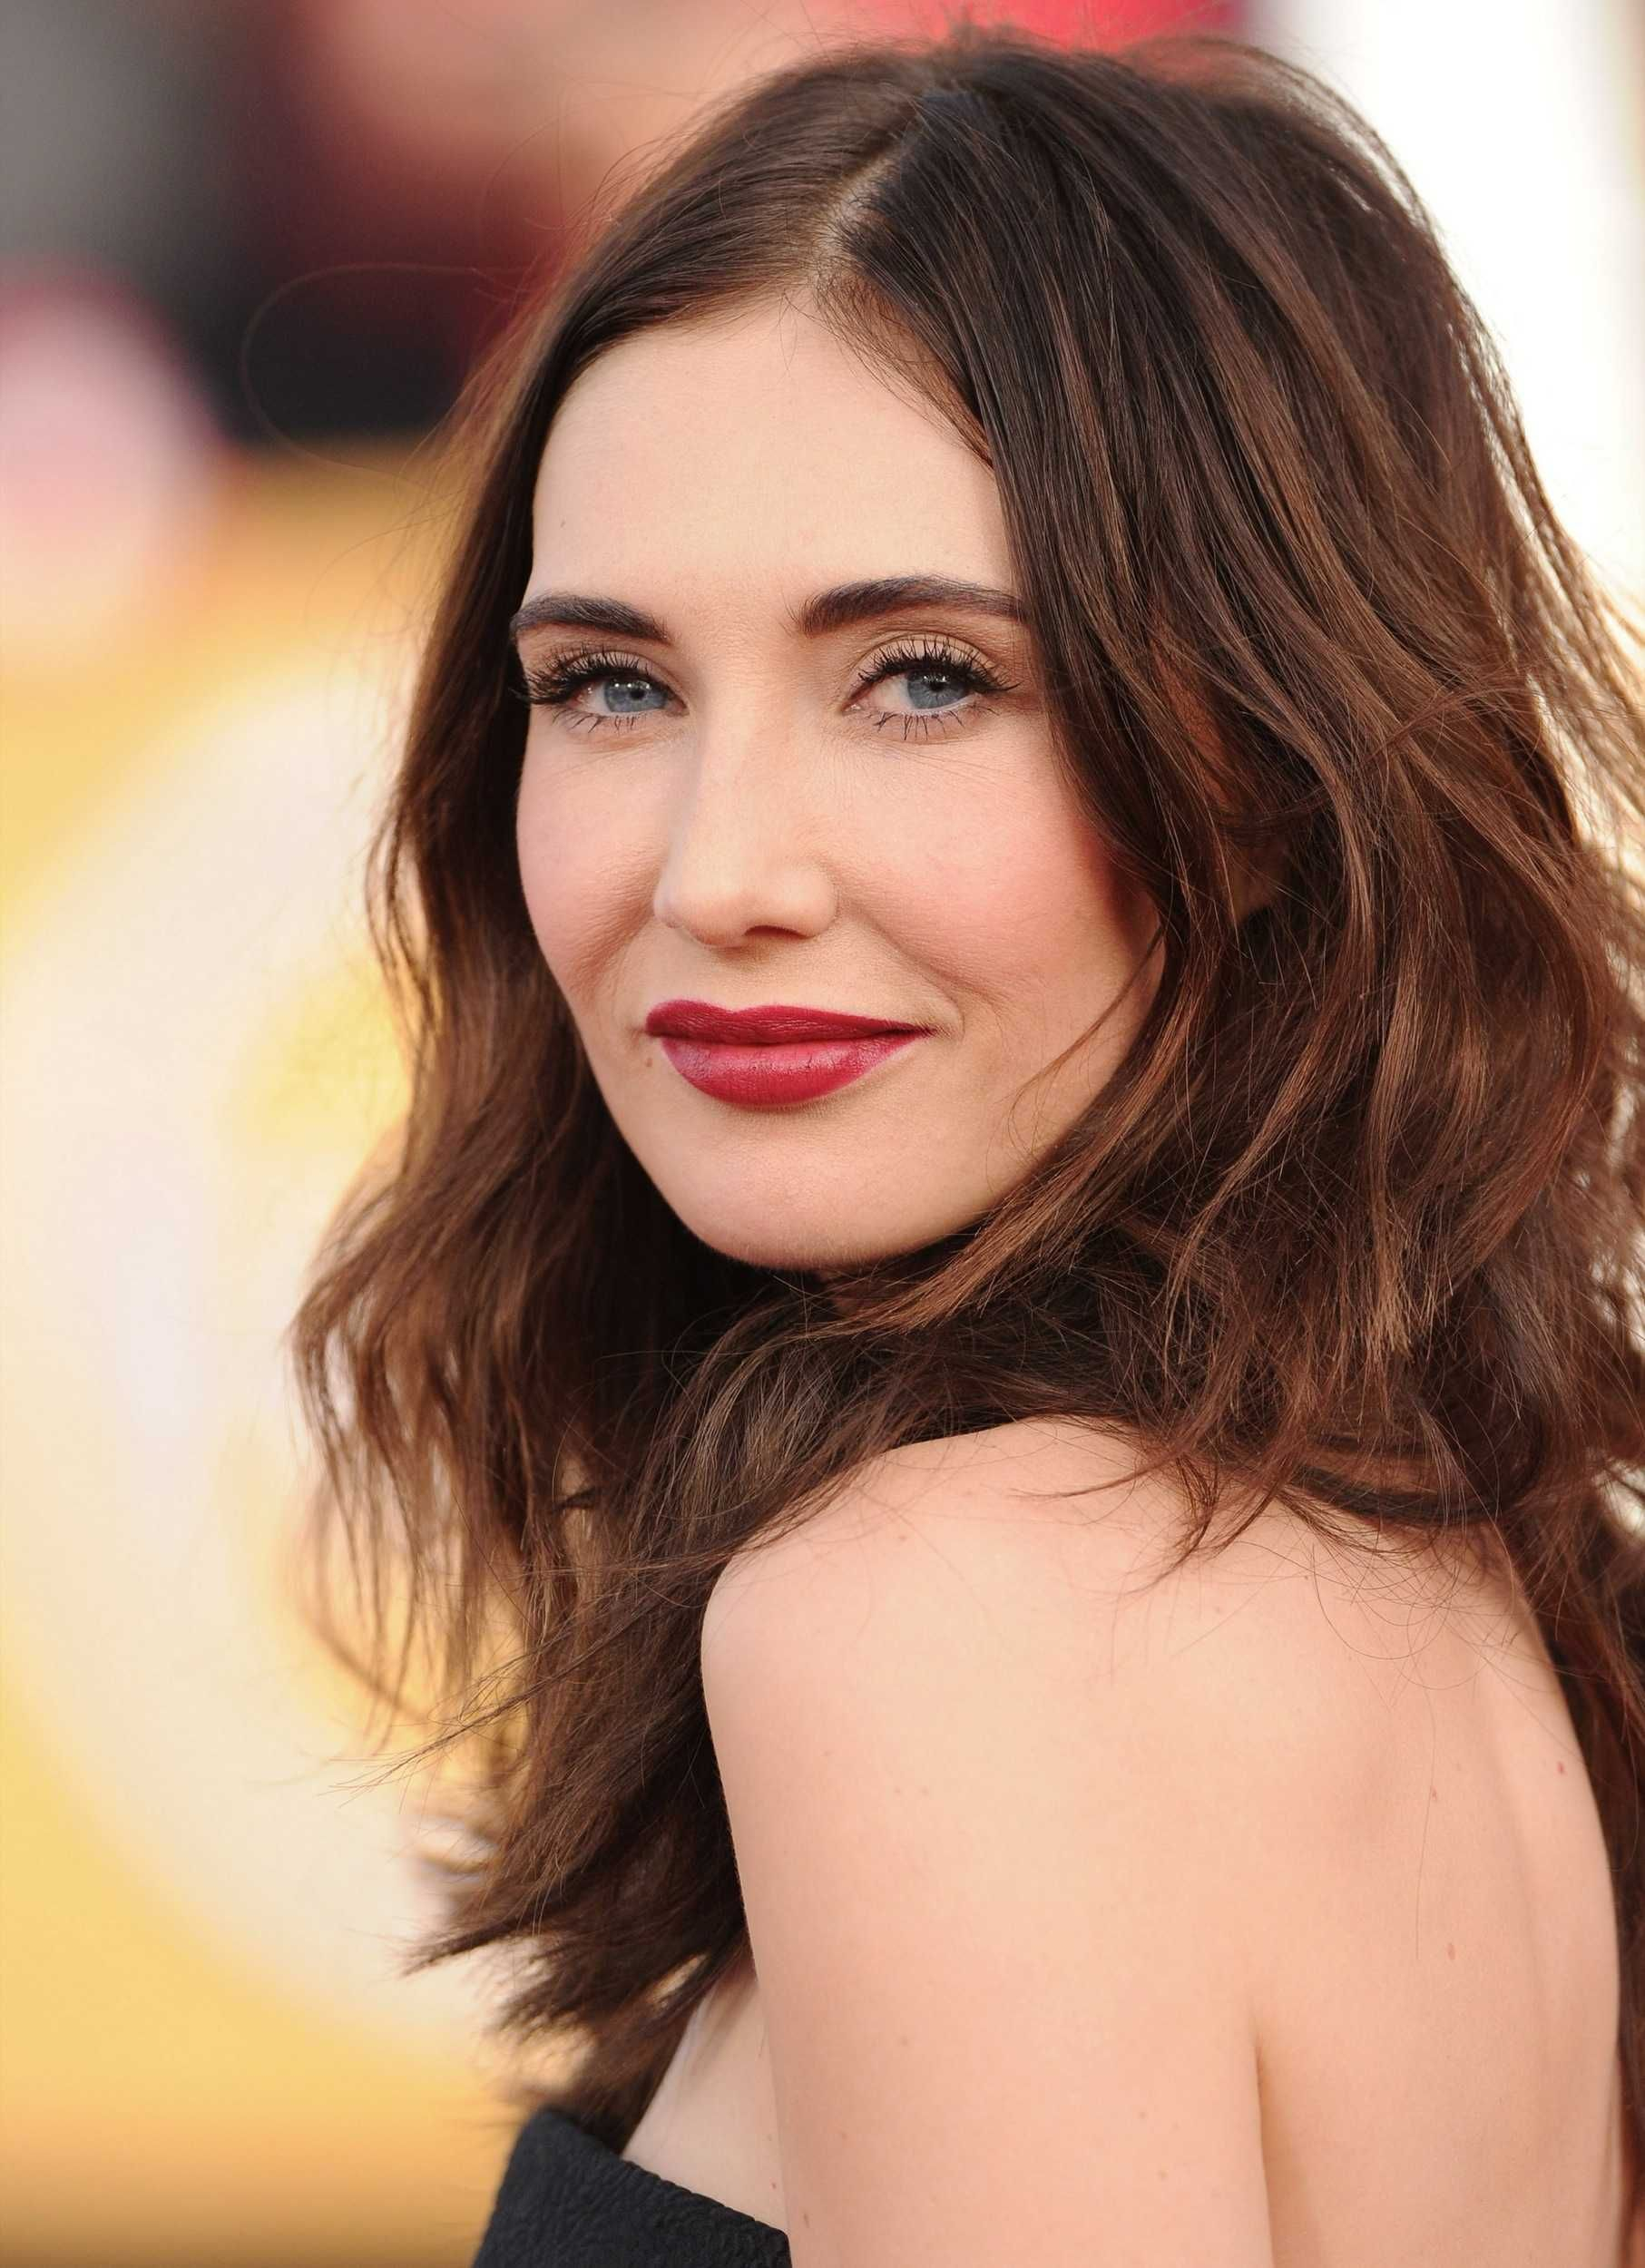 Celebrites Carice Van Houten naked (63 photos), Topless, Is a cute, Selfie, panties 2017